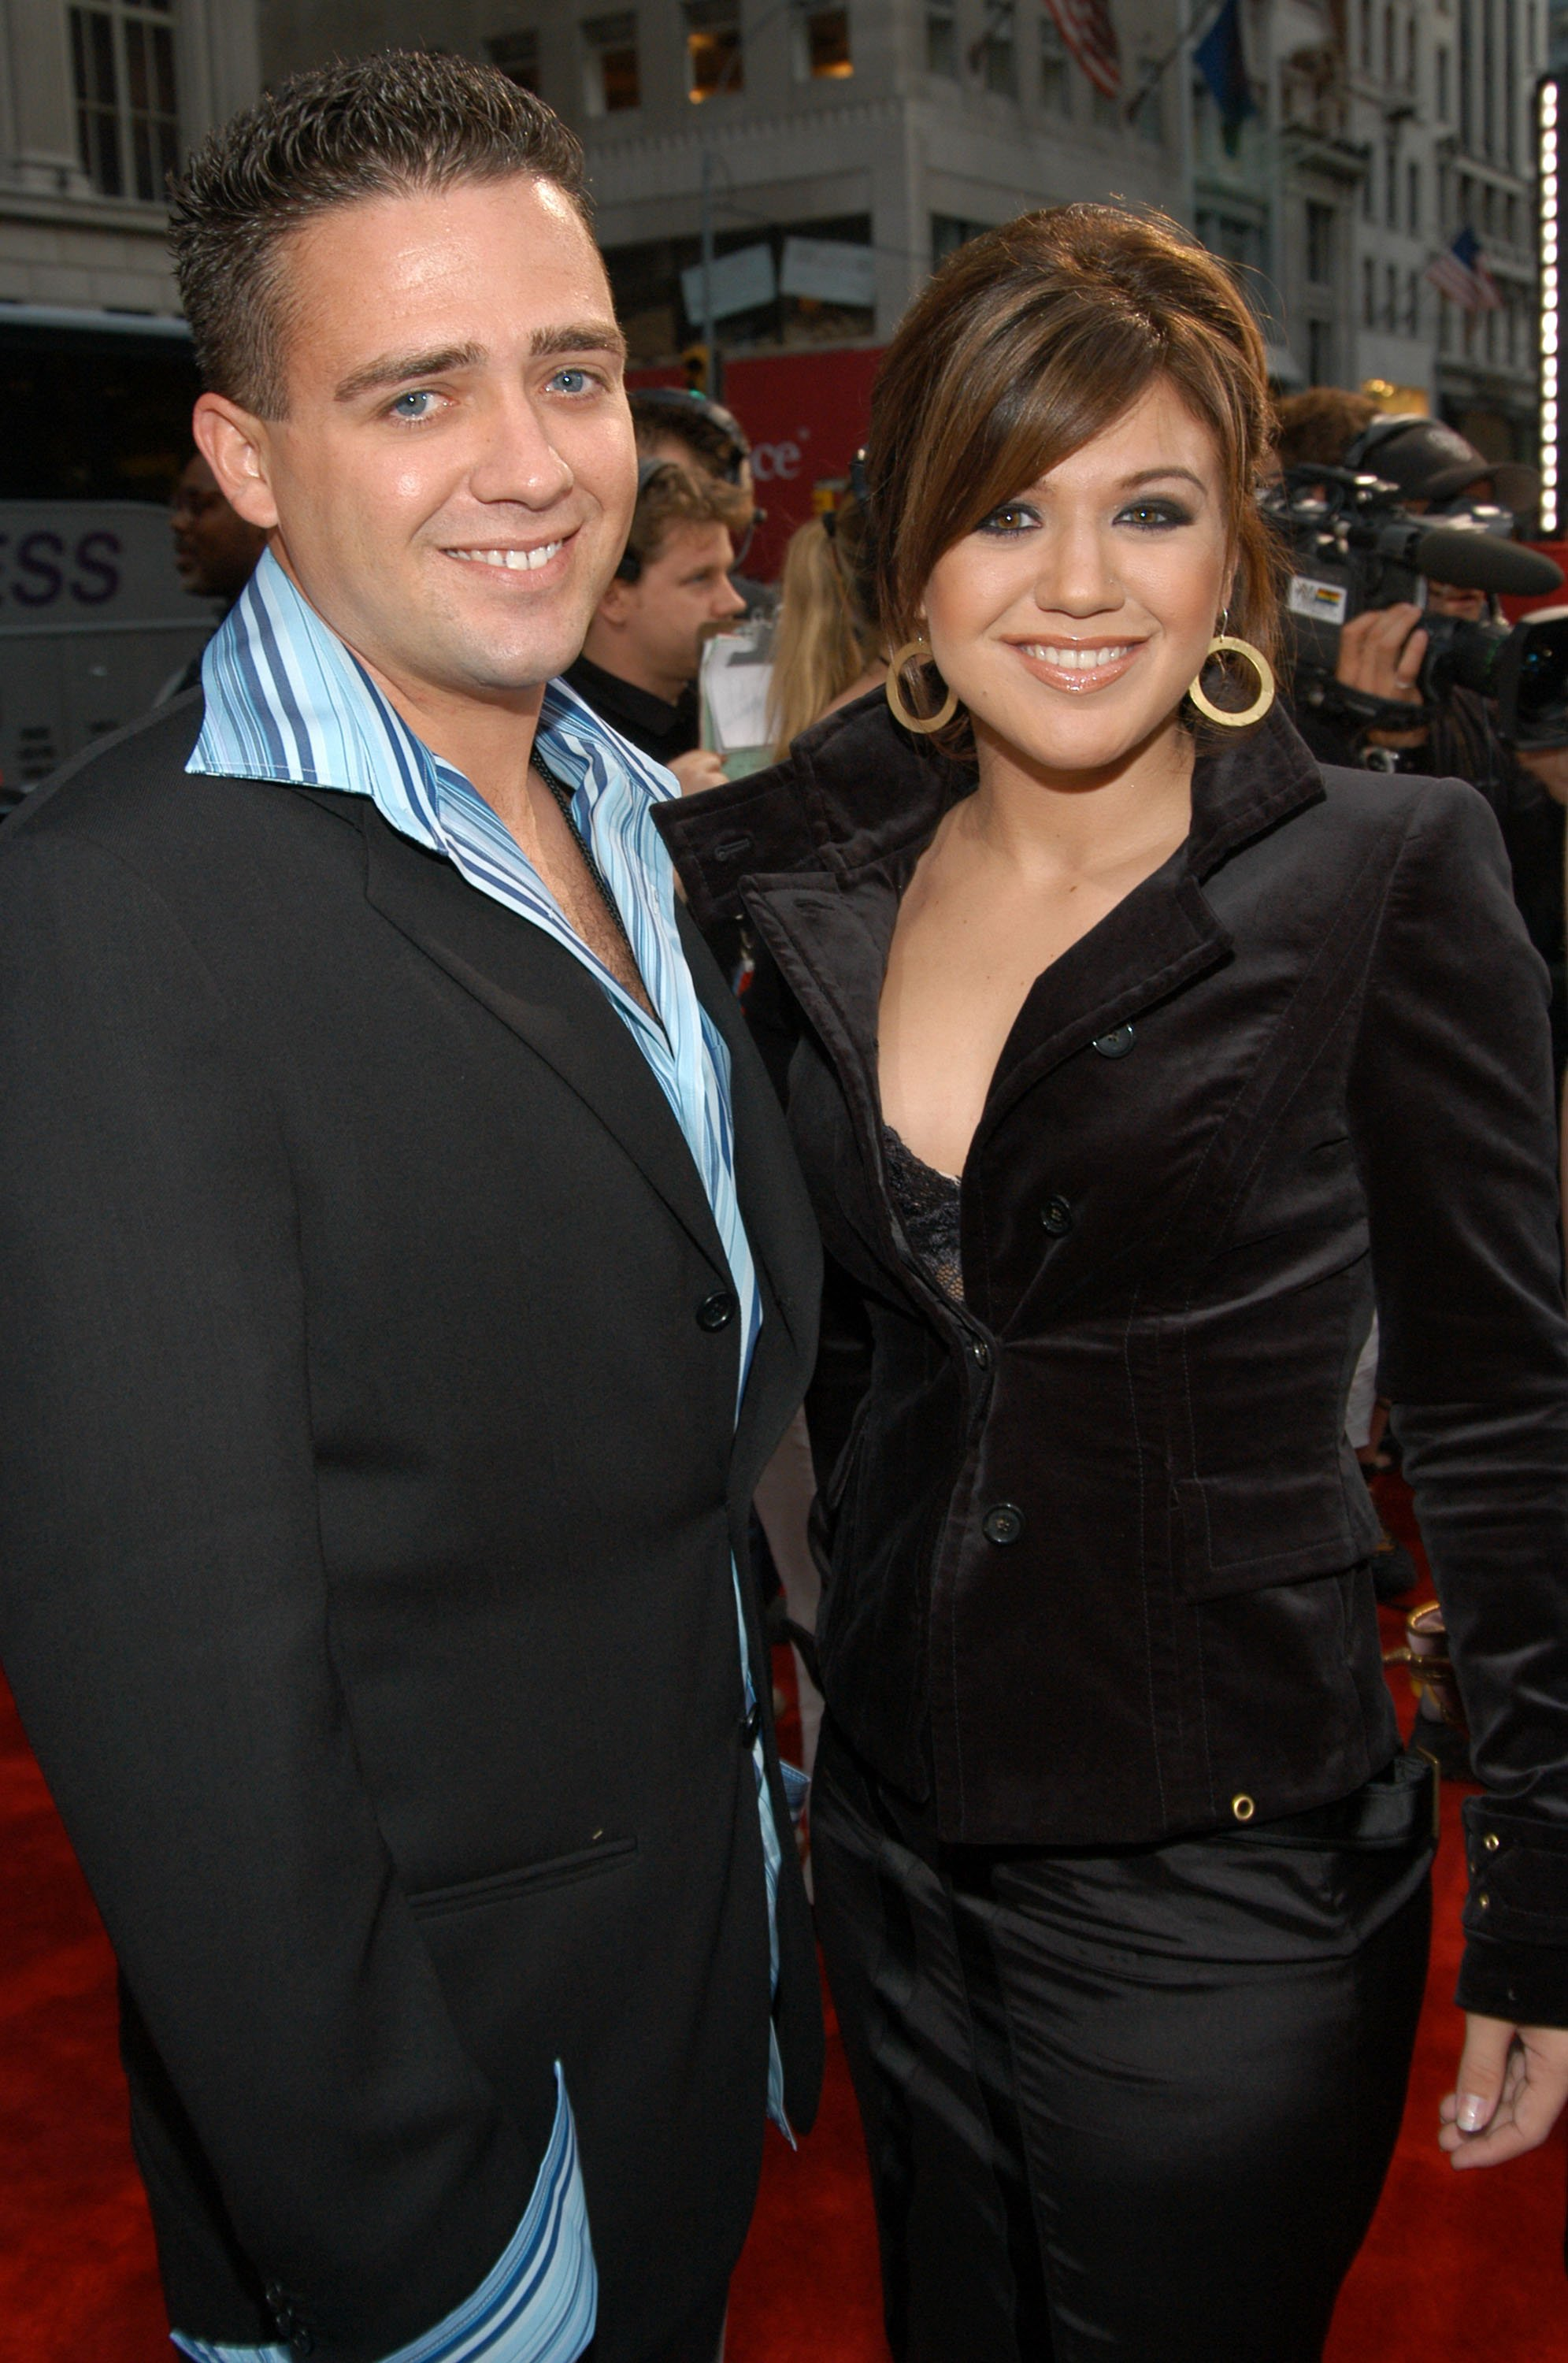 Image Credits: Getty Images | Kelly and her brother Jason at the Radio City Music Hall in New York City, 2003